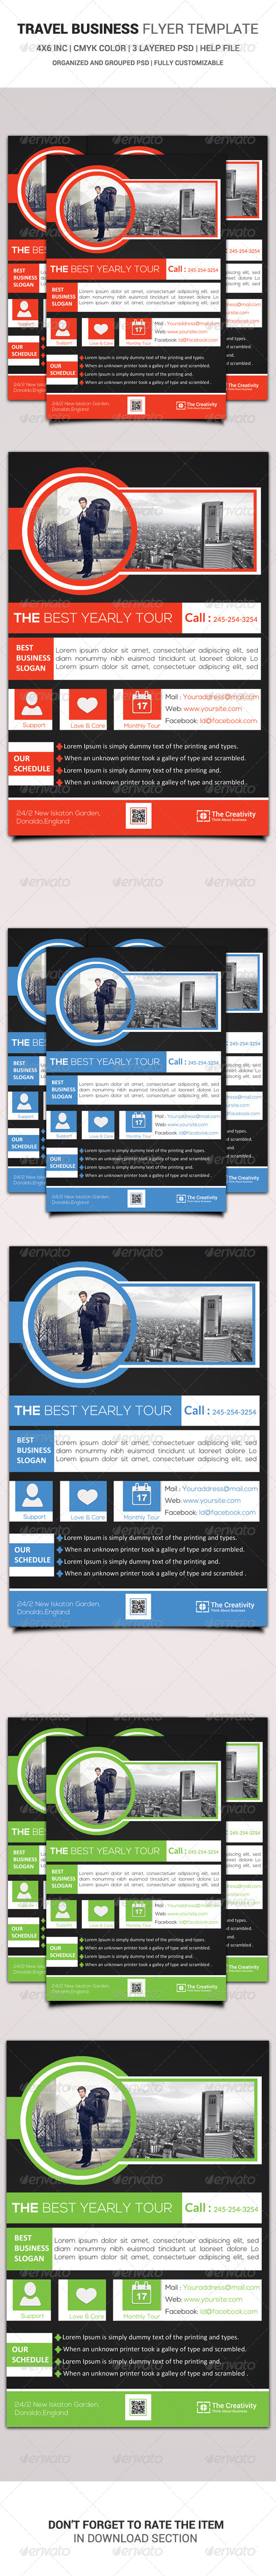 Travel Business Flyer Template - Corporate Flyers